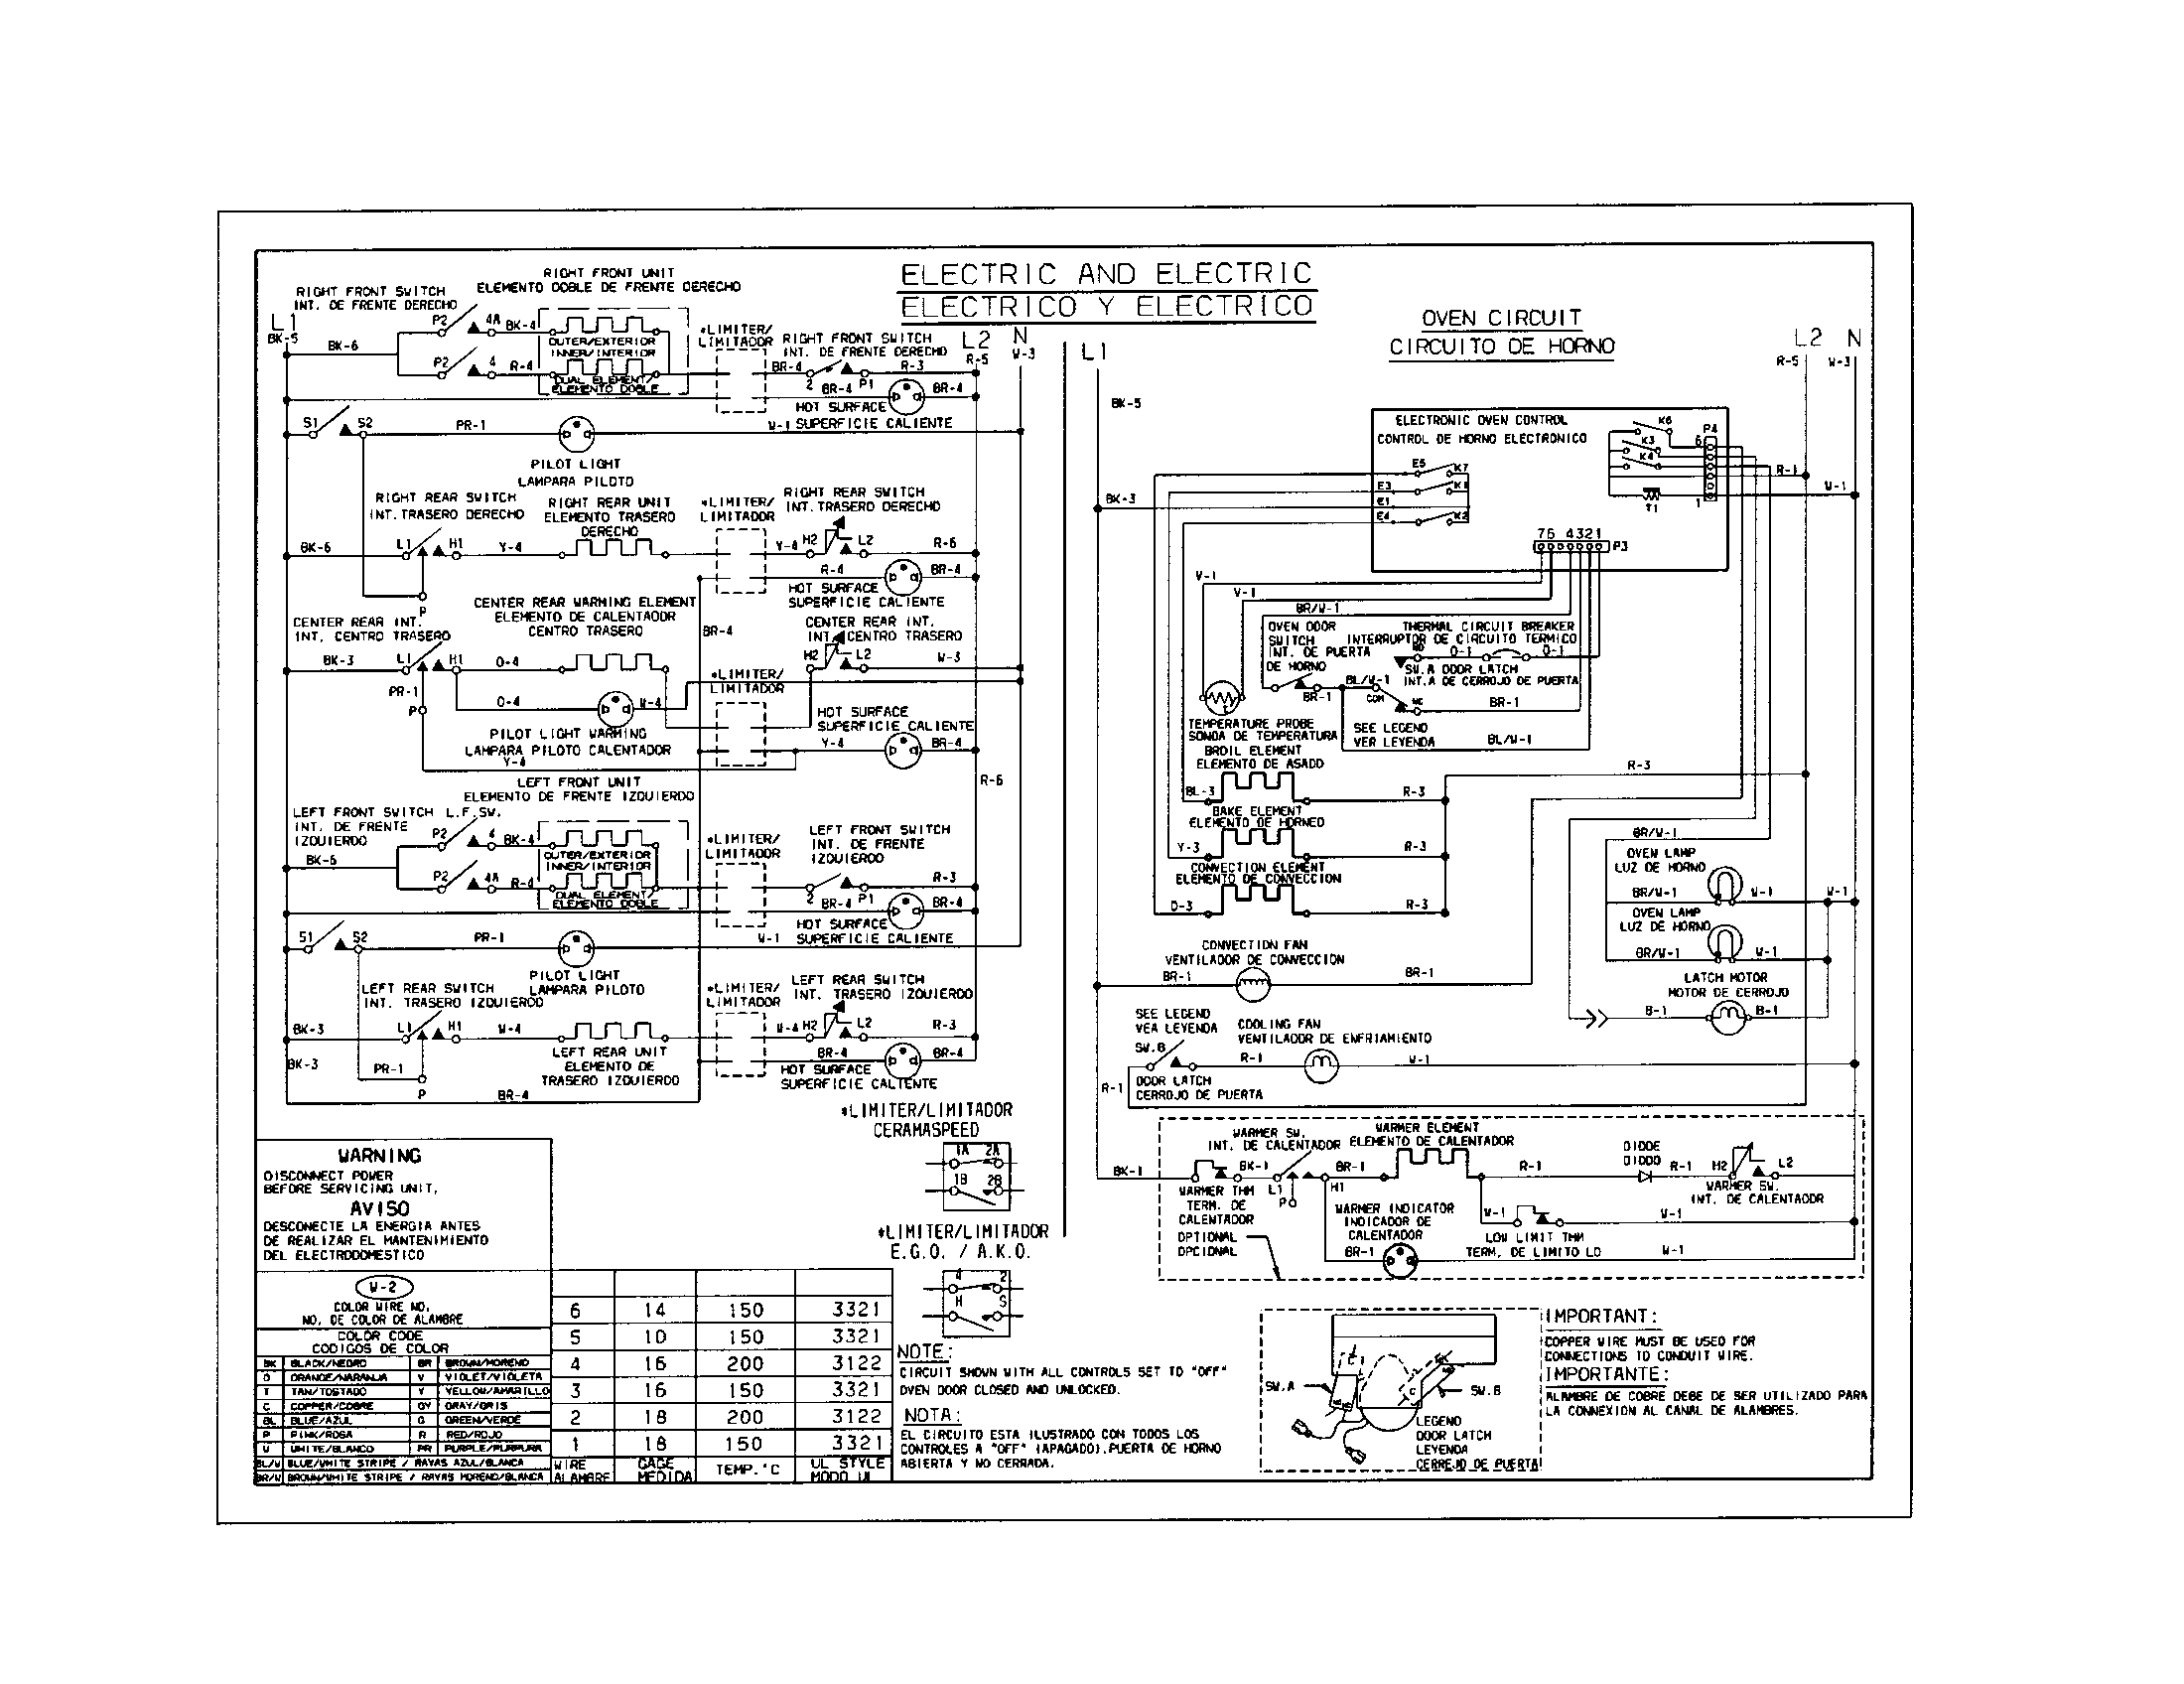 wiring diagram parts protectofier wiring diagram protectofier controls \u2022 indy500 co protectofier wiring diagram at soozxer.org